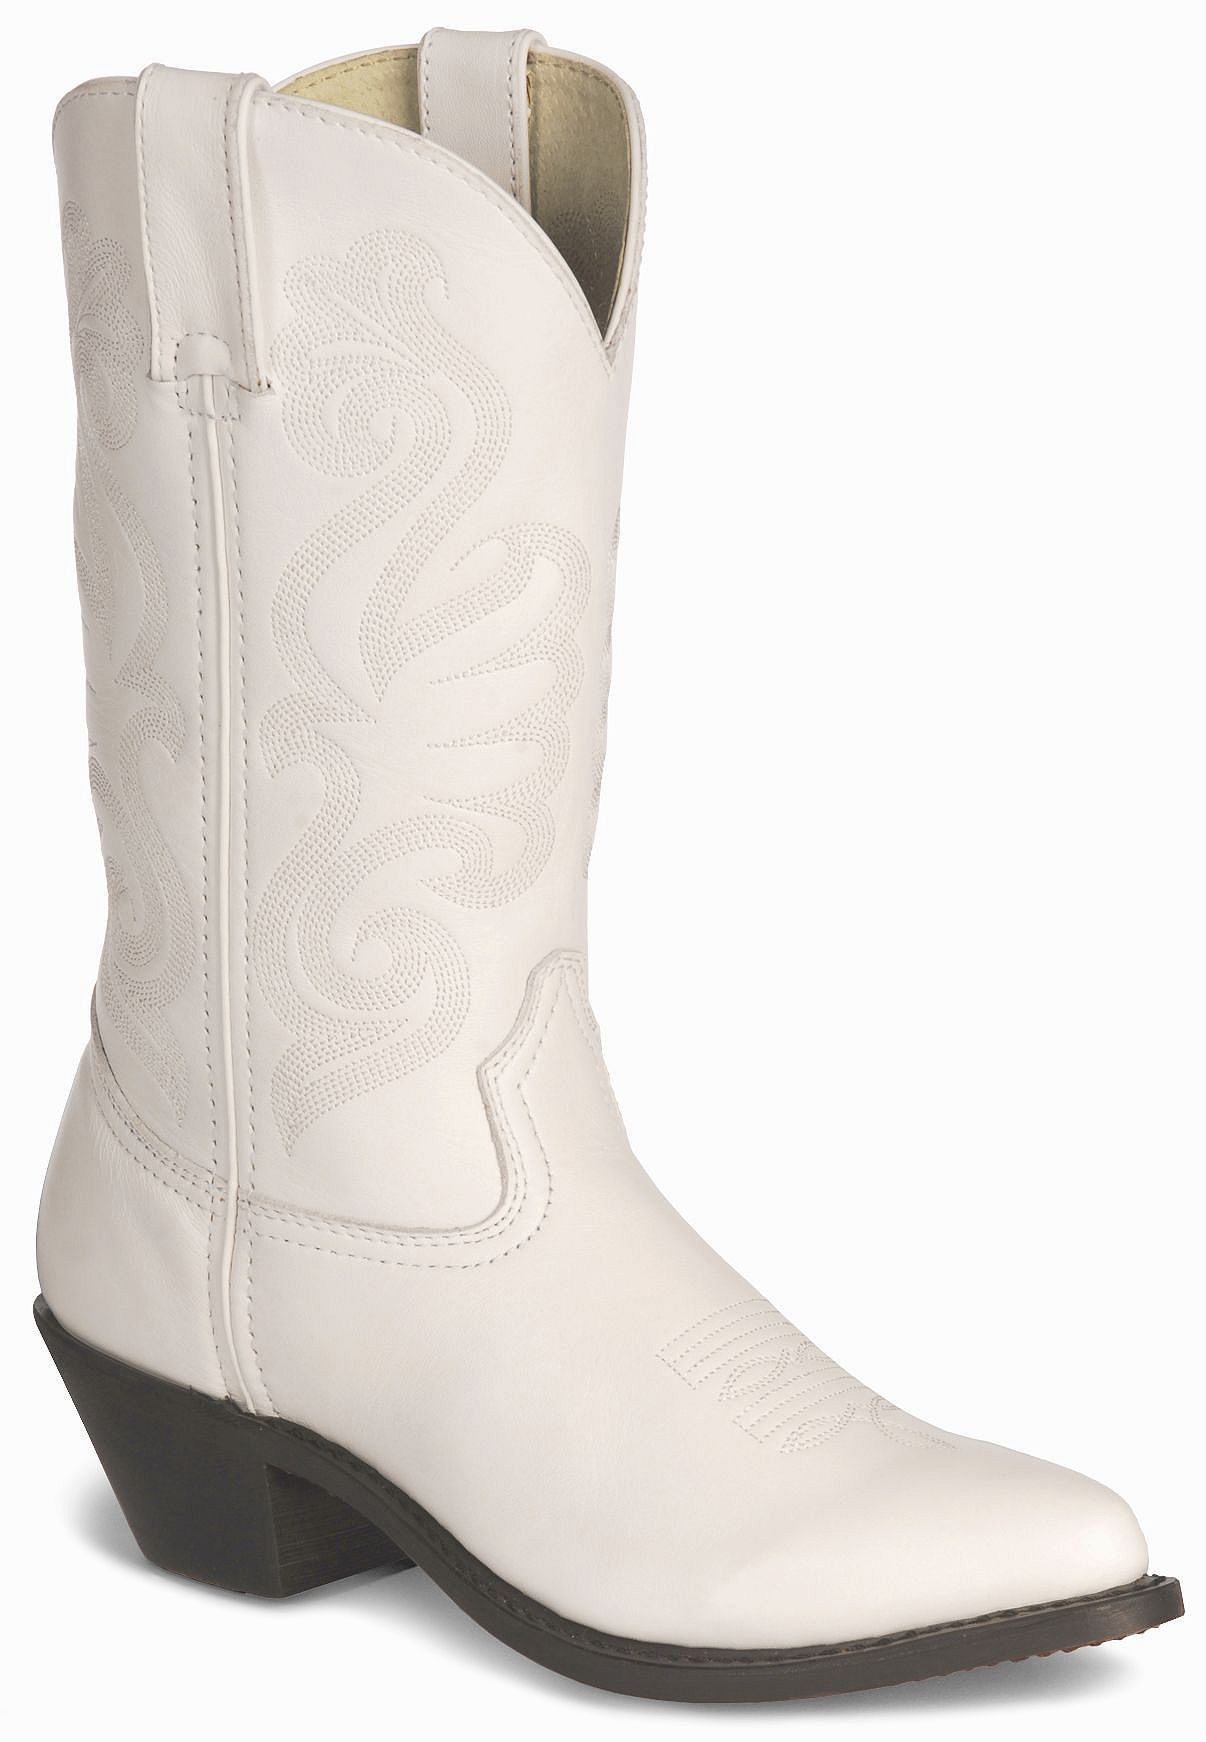 Durango Wild White Cowgirl Boots - Pointed Toe | Sheplers